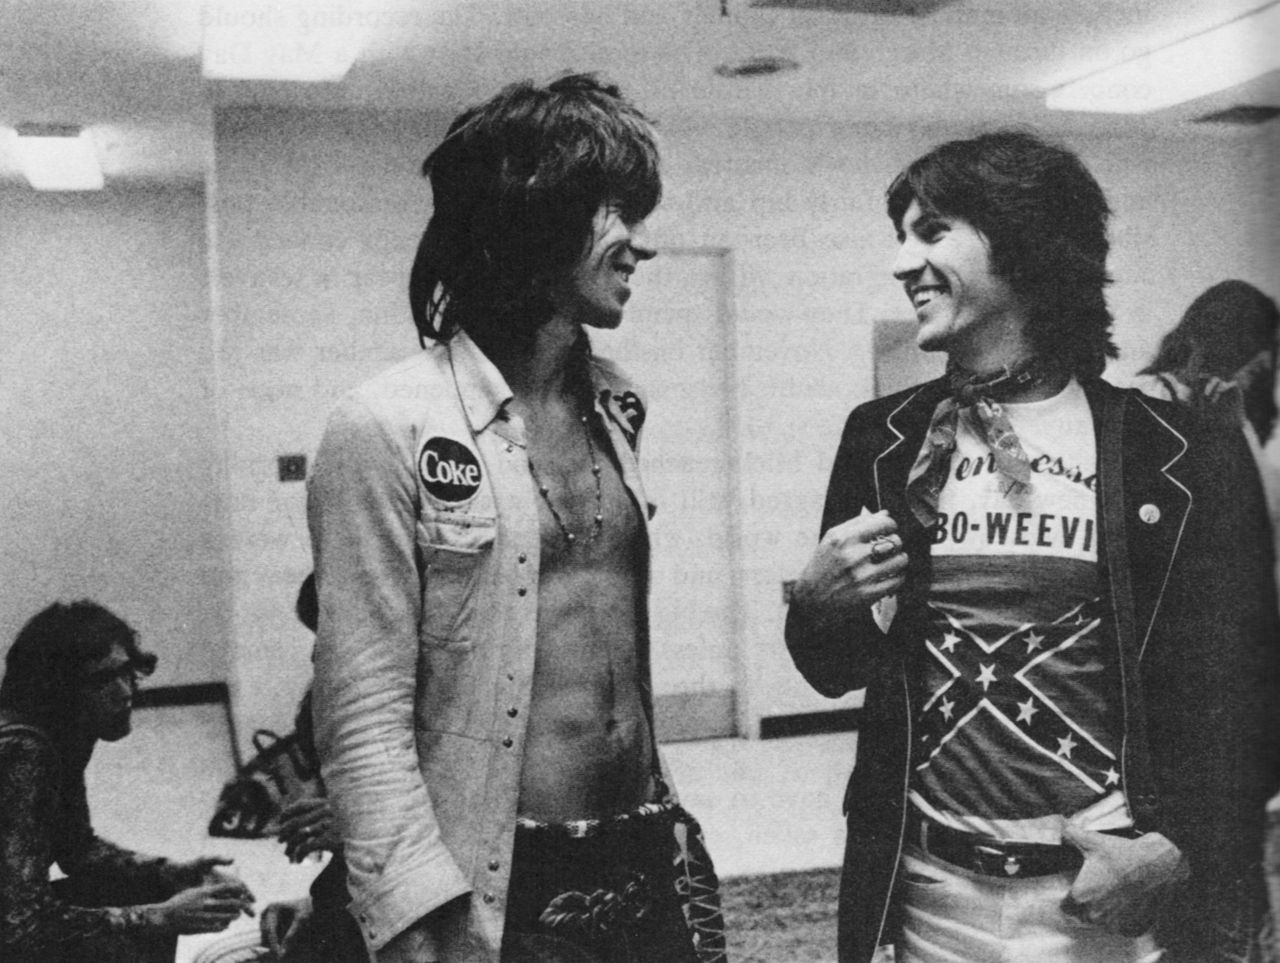 Stones Touring Party 1972 | STP '72 in 2019 | Keith richards